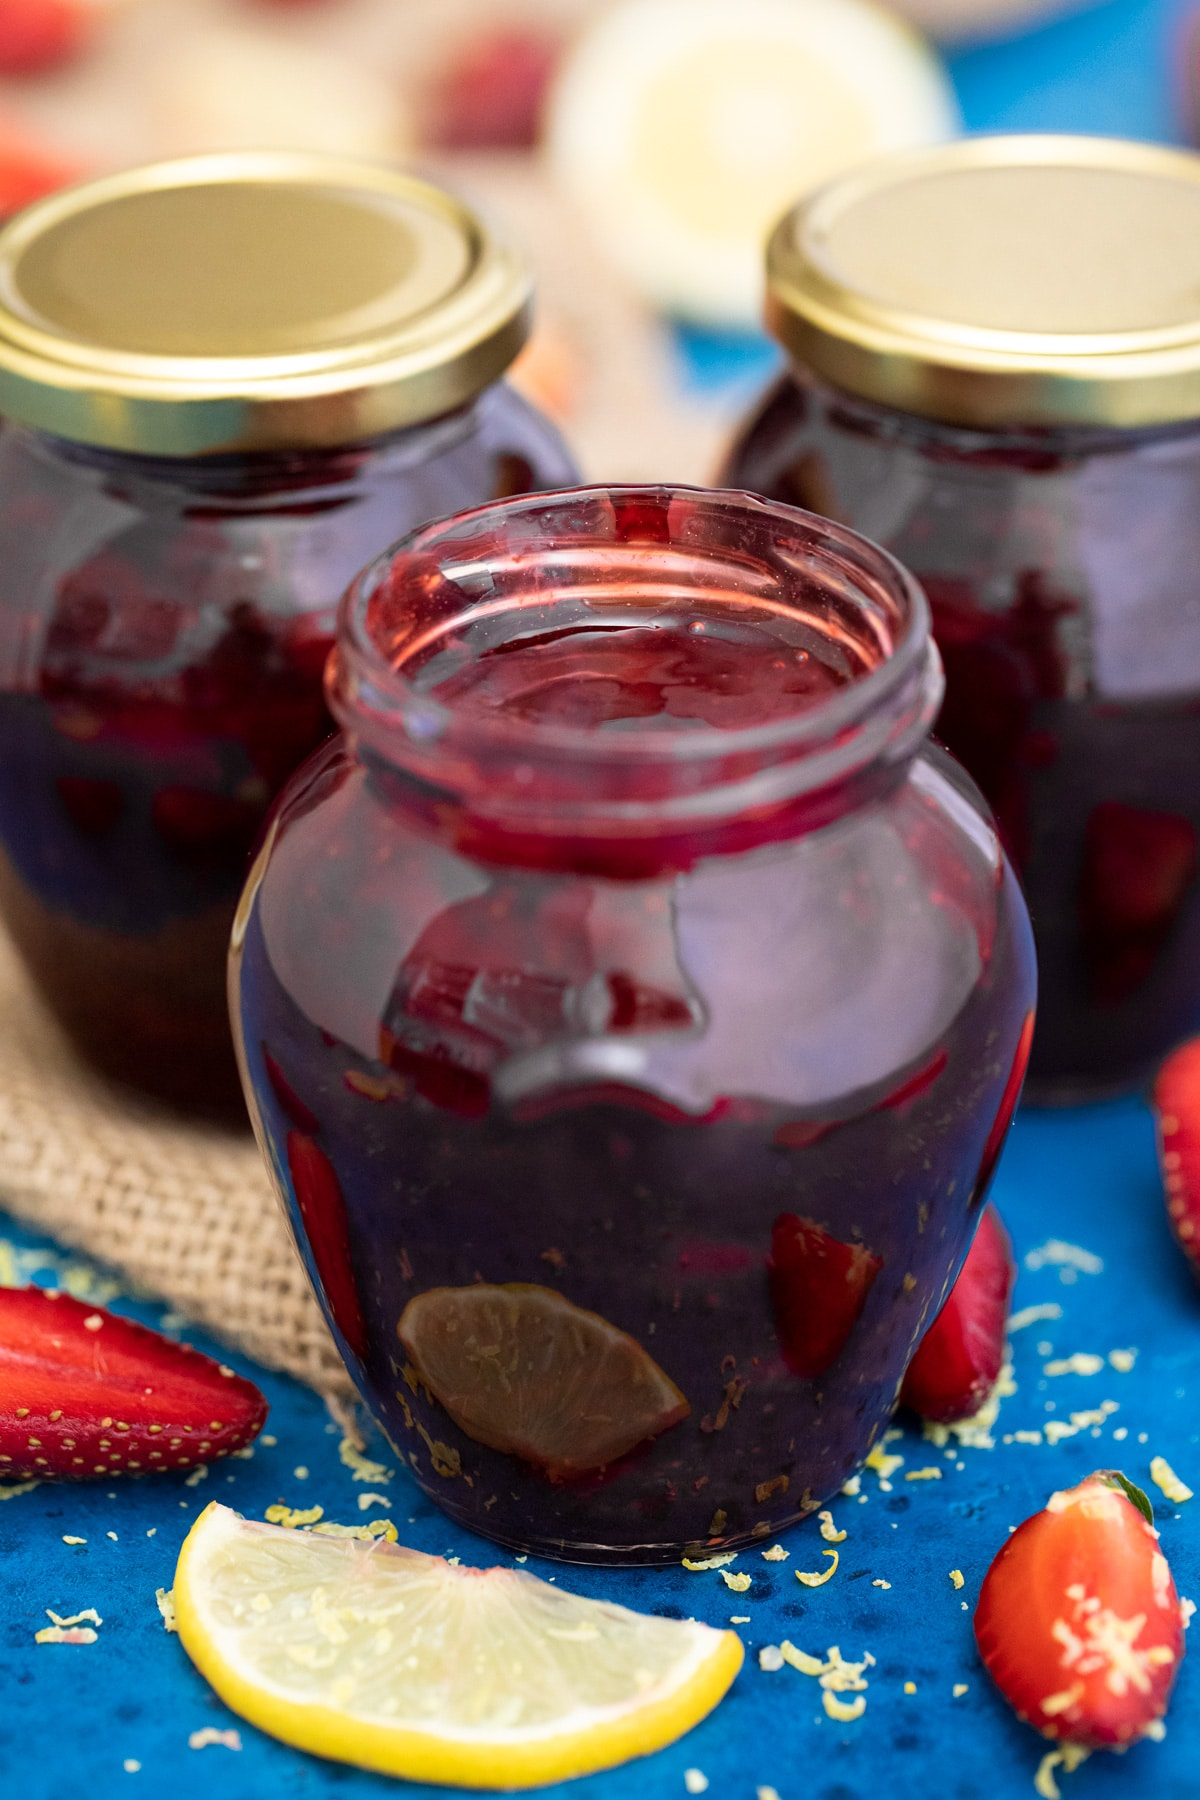 Pear shaped jars of strawberry jam on blue table with berries and lemon